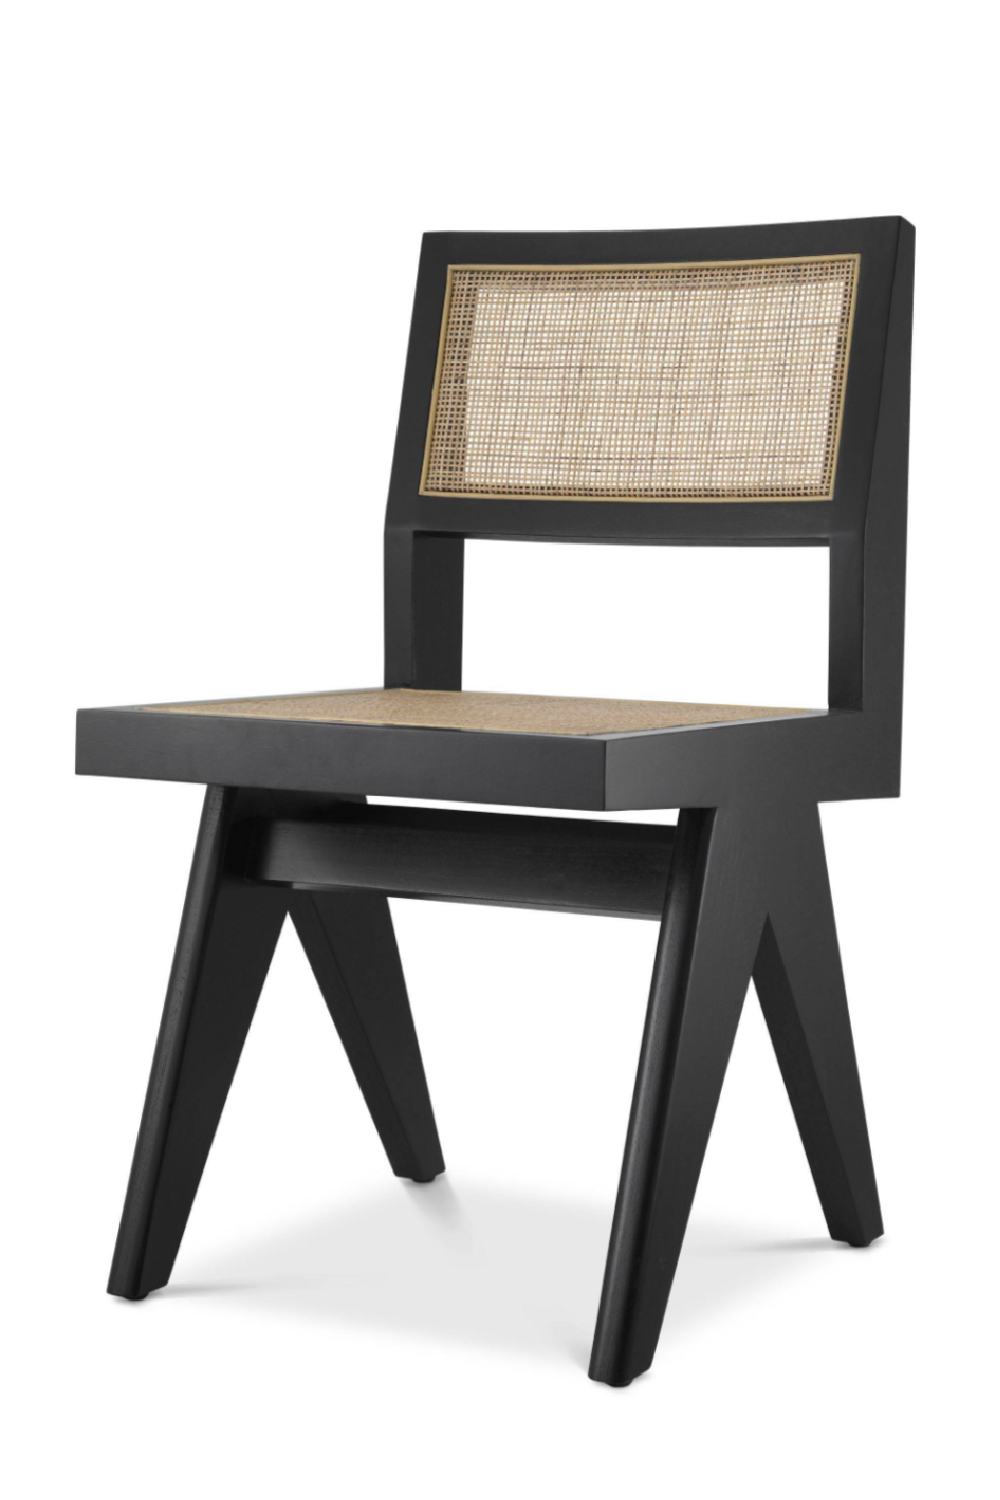 Black Rattan Cane Dining Chair | Eichholtz Niclas | Woodfurniture.com